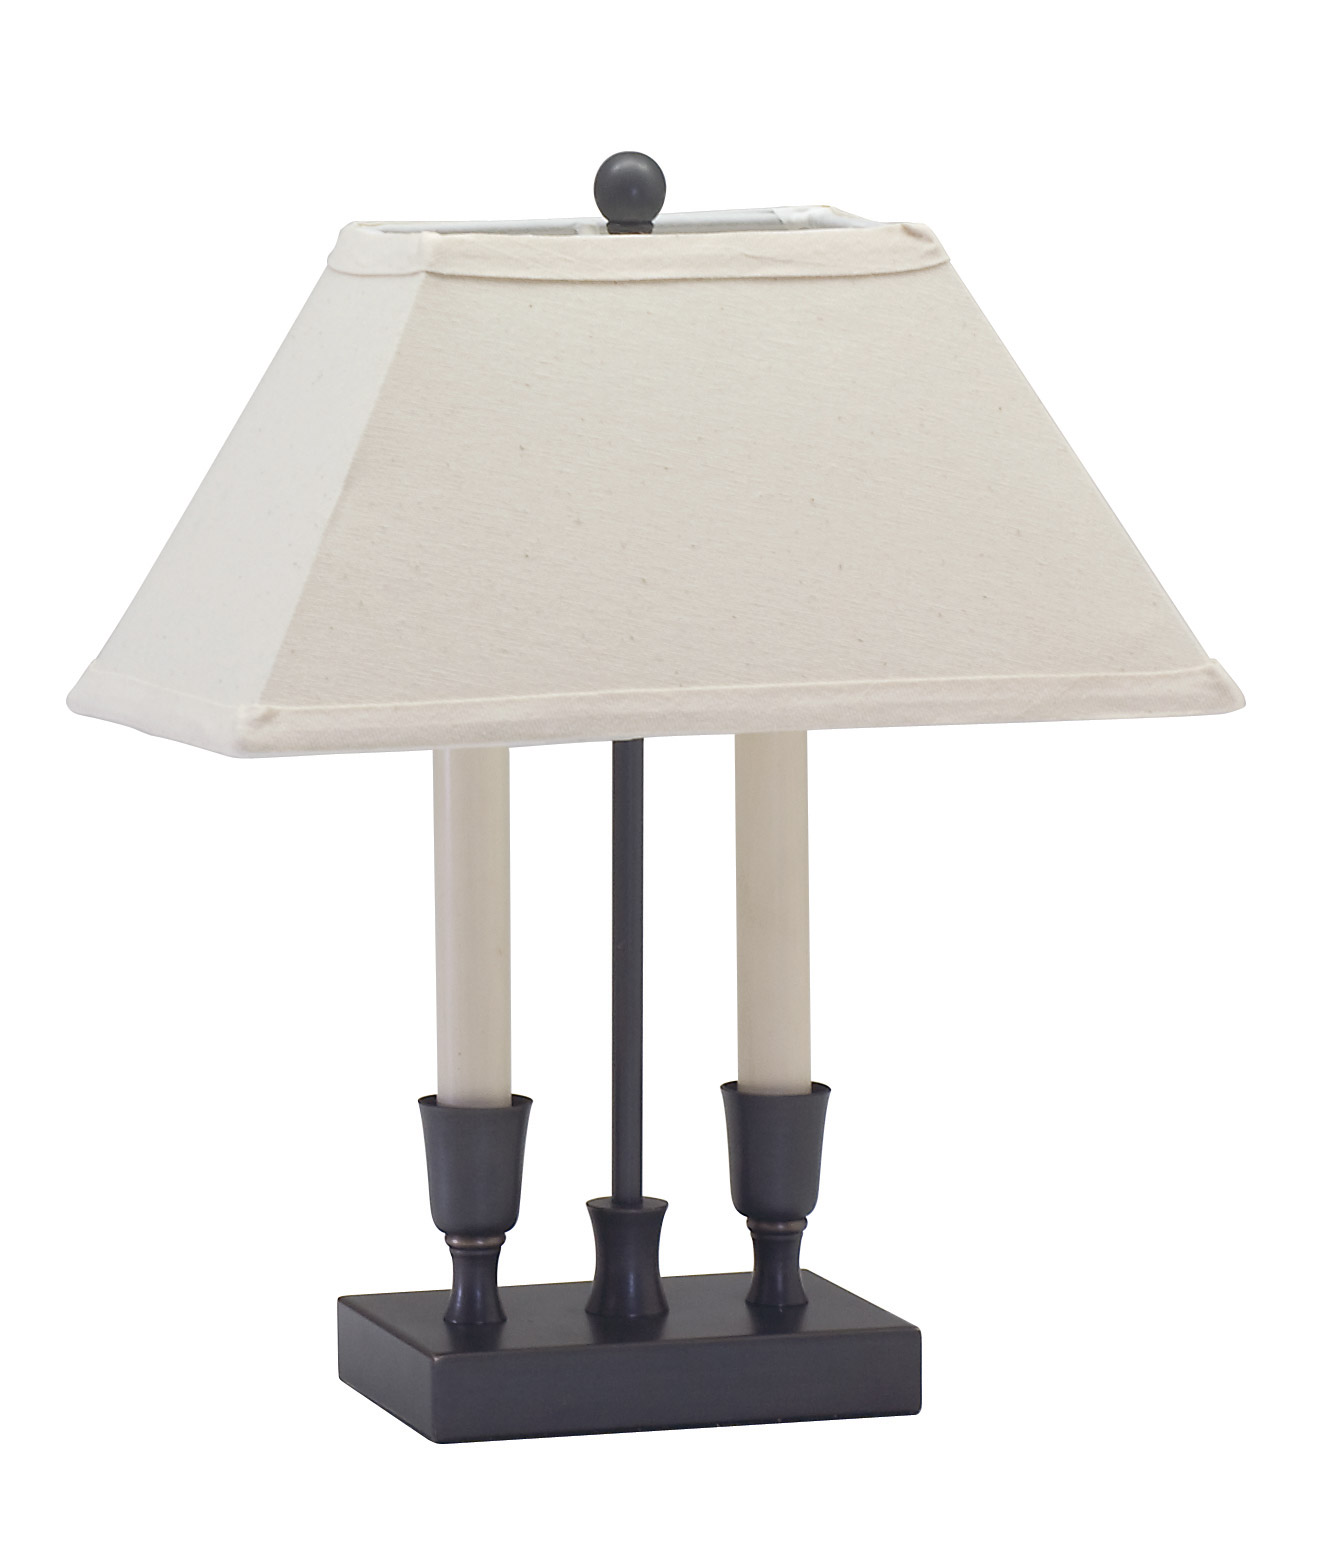 home lamps table lamps accent lamps house of troy ch880 ob. Black Bedroom Furniture Sets. Home Design Ideas